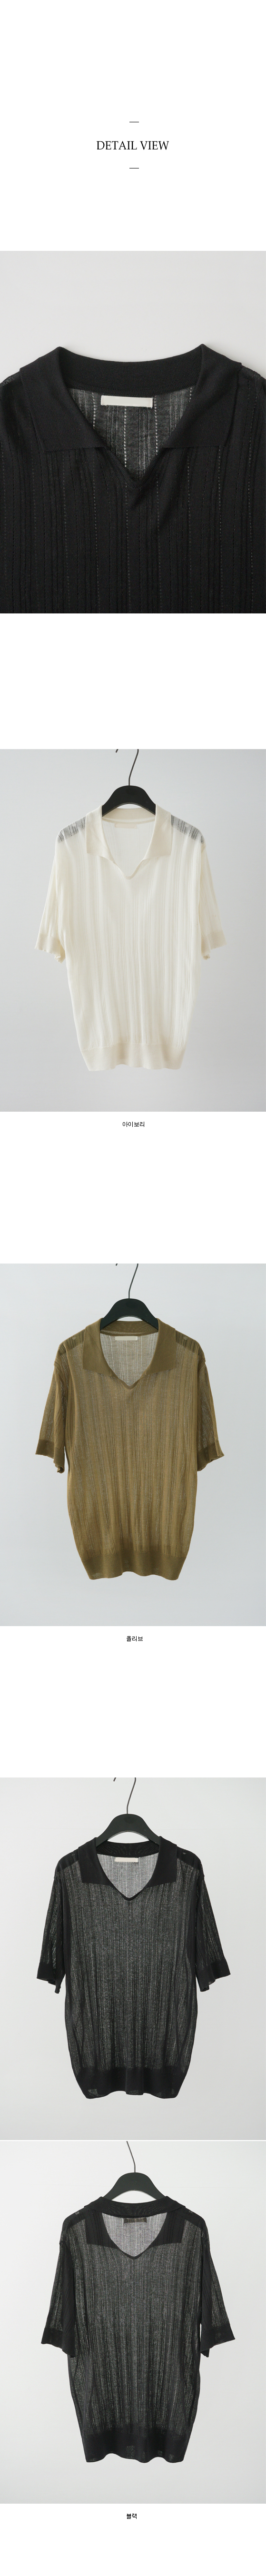 see-through vintage knit